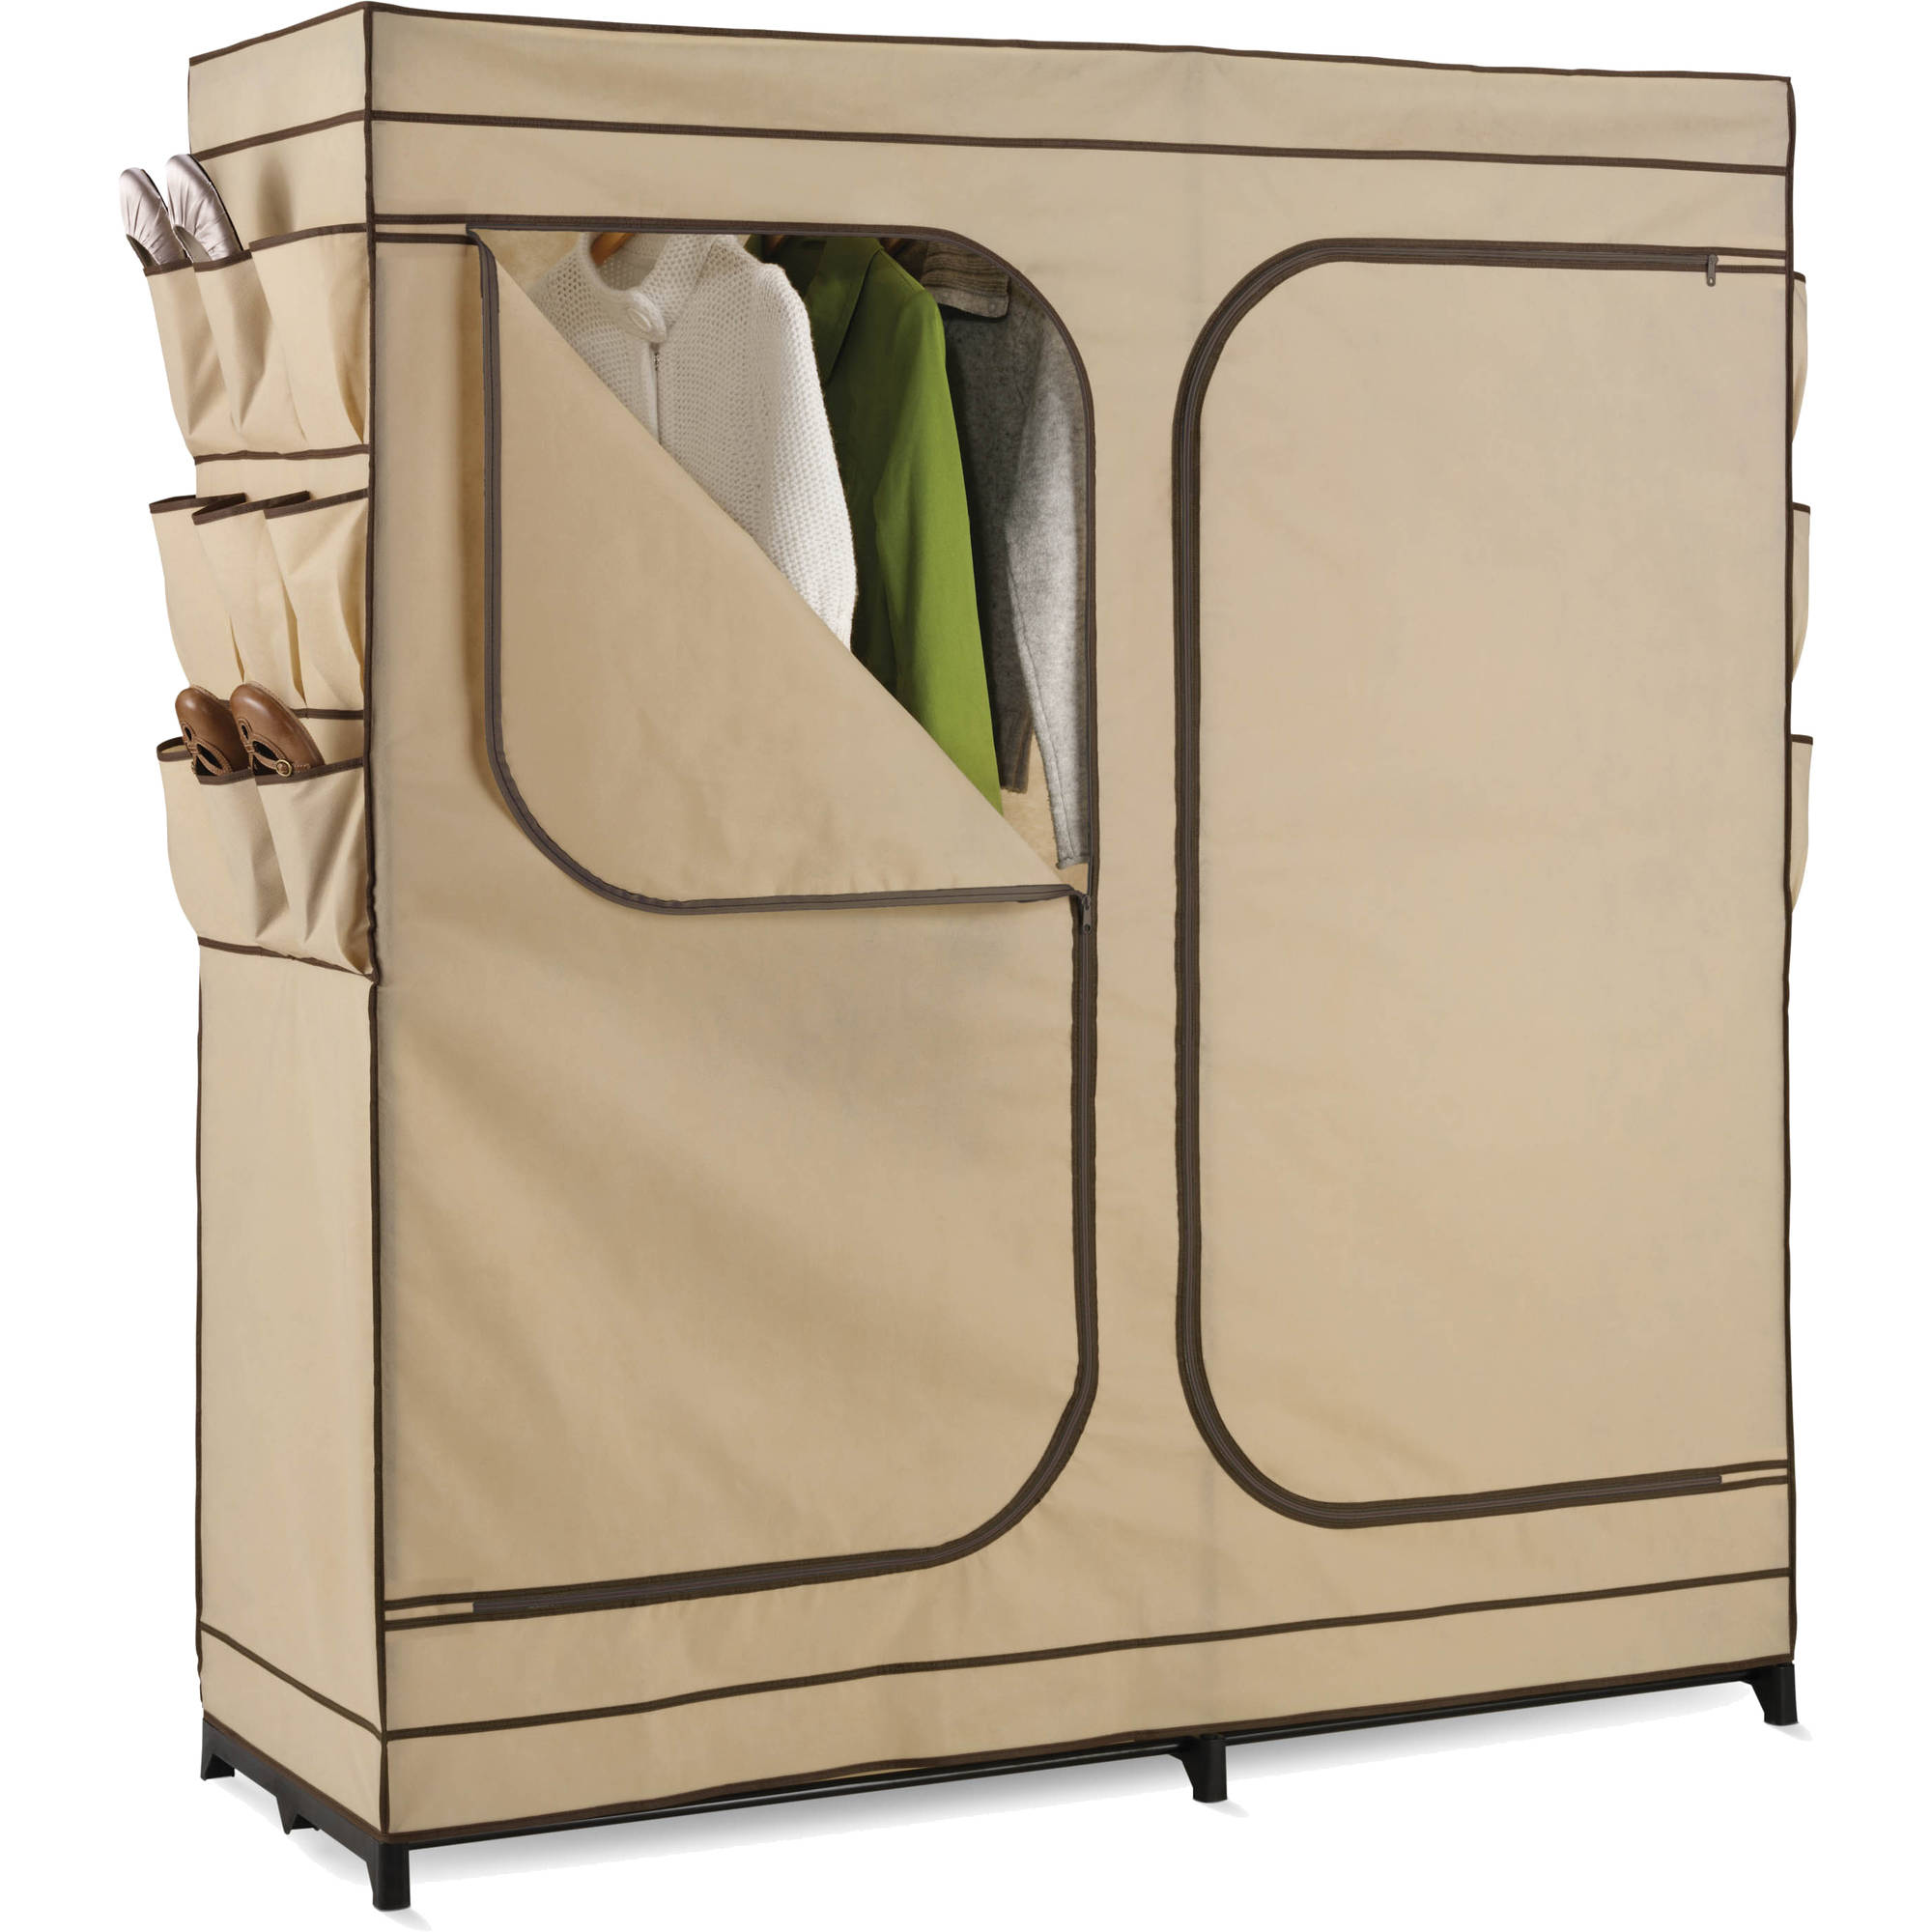 Portable Clothes Closet Wardrobe Storage Rack Multi-tier Storage Organizer  smt - Walmart.com